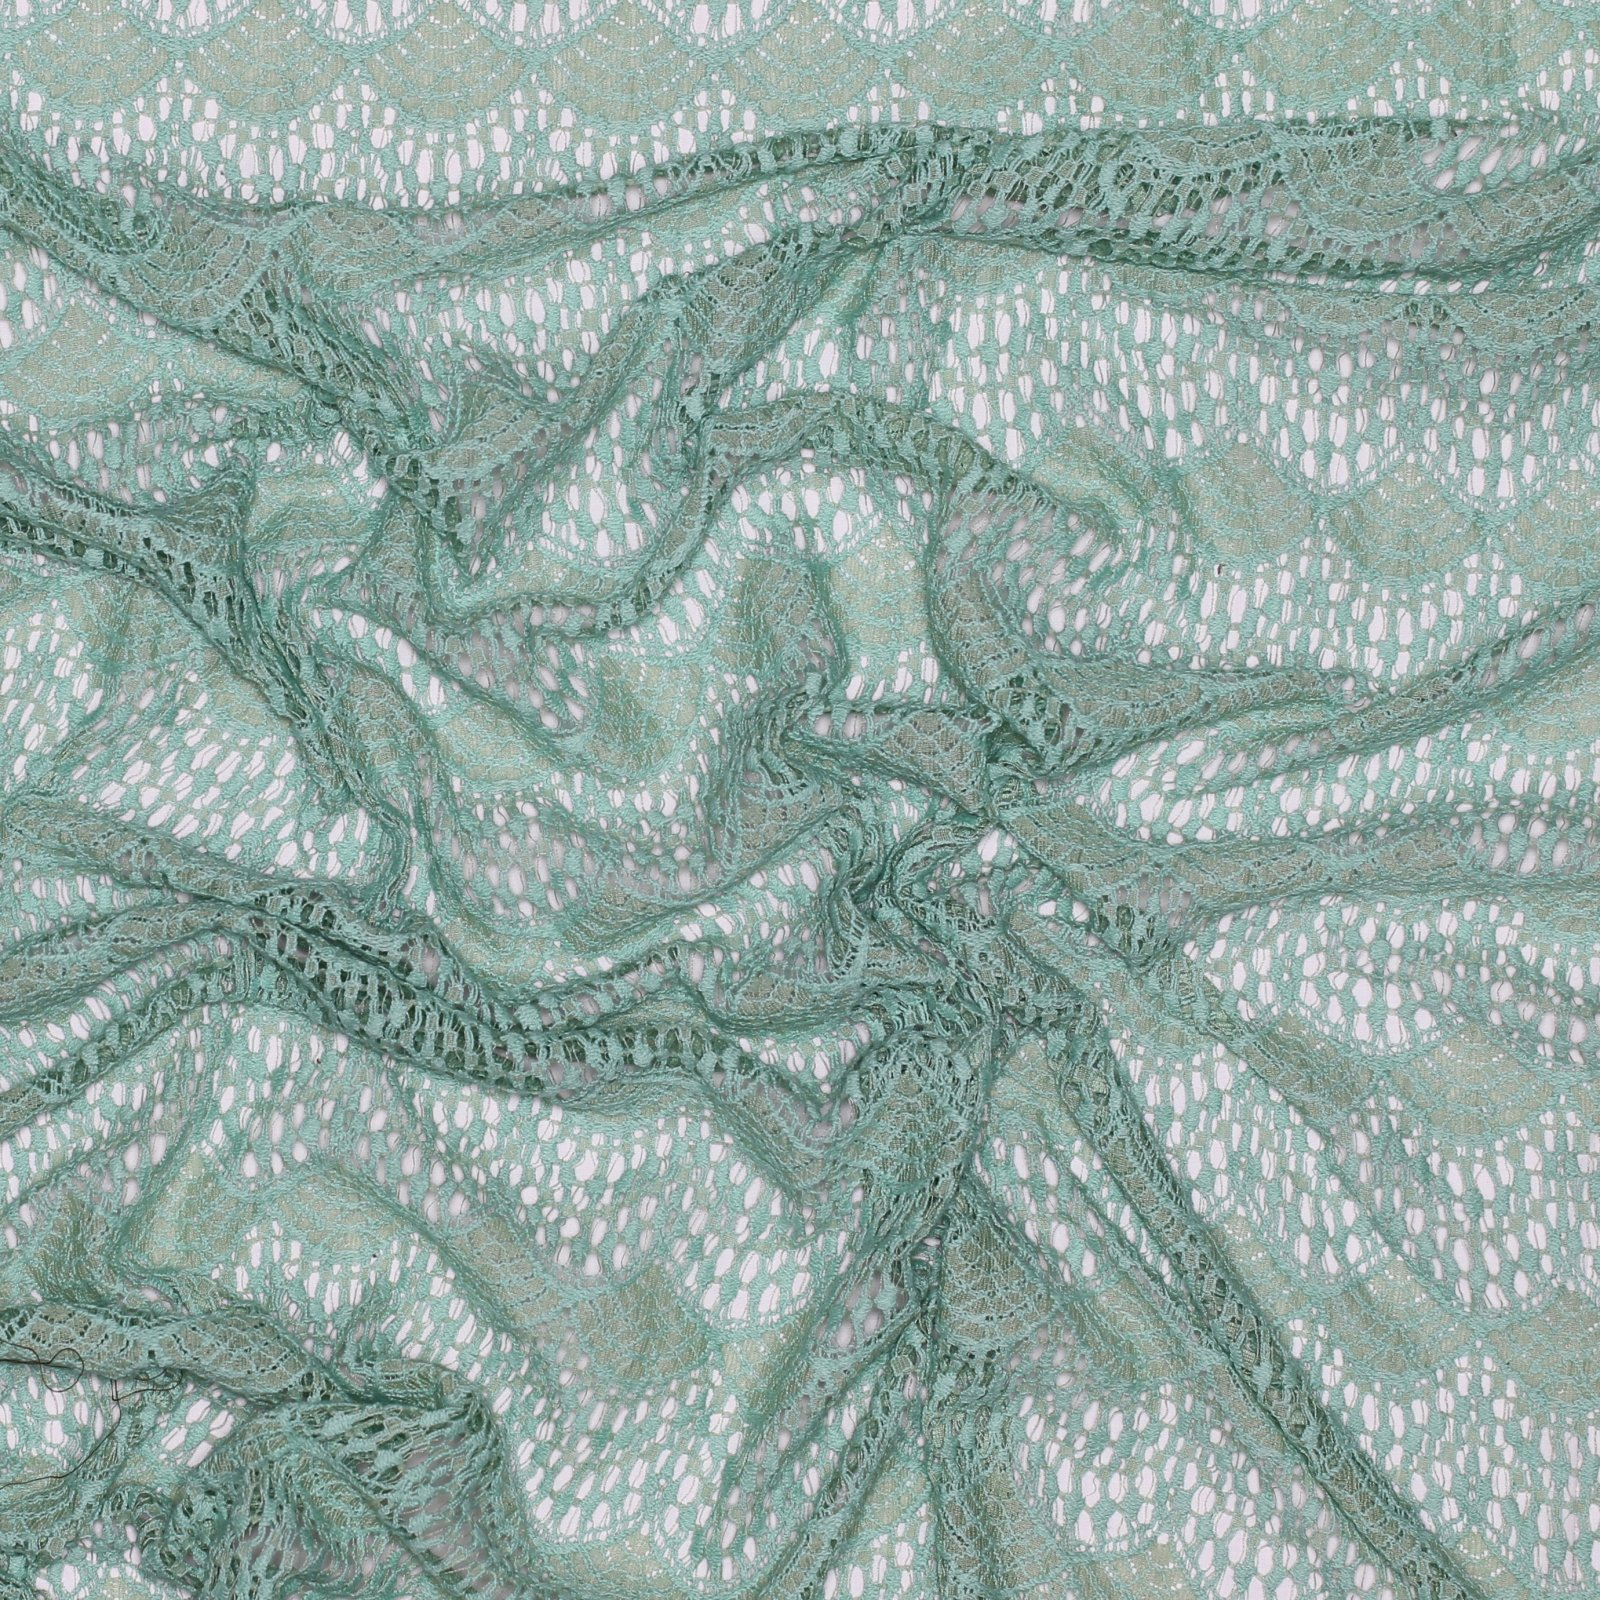 Seafoam Green Cotton/Nylon Lace